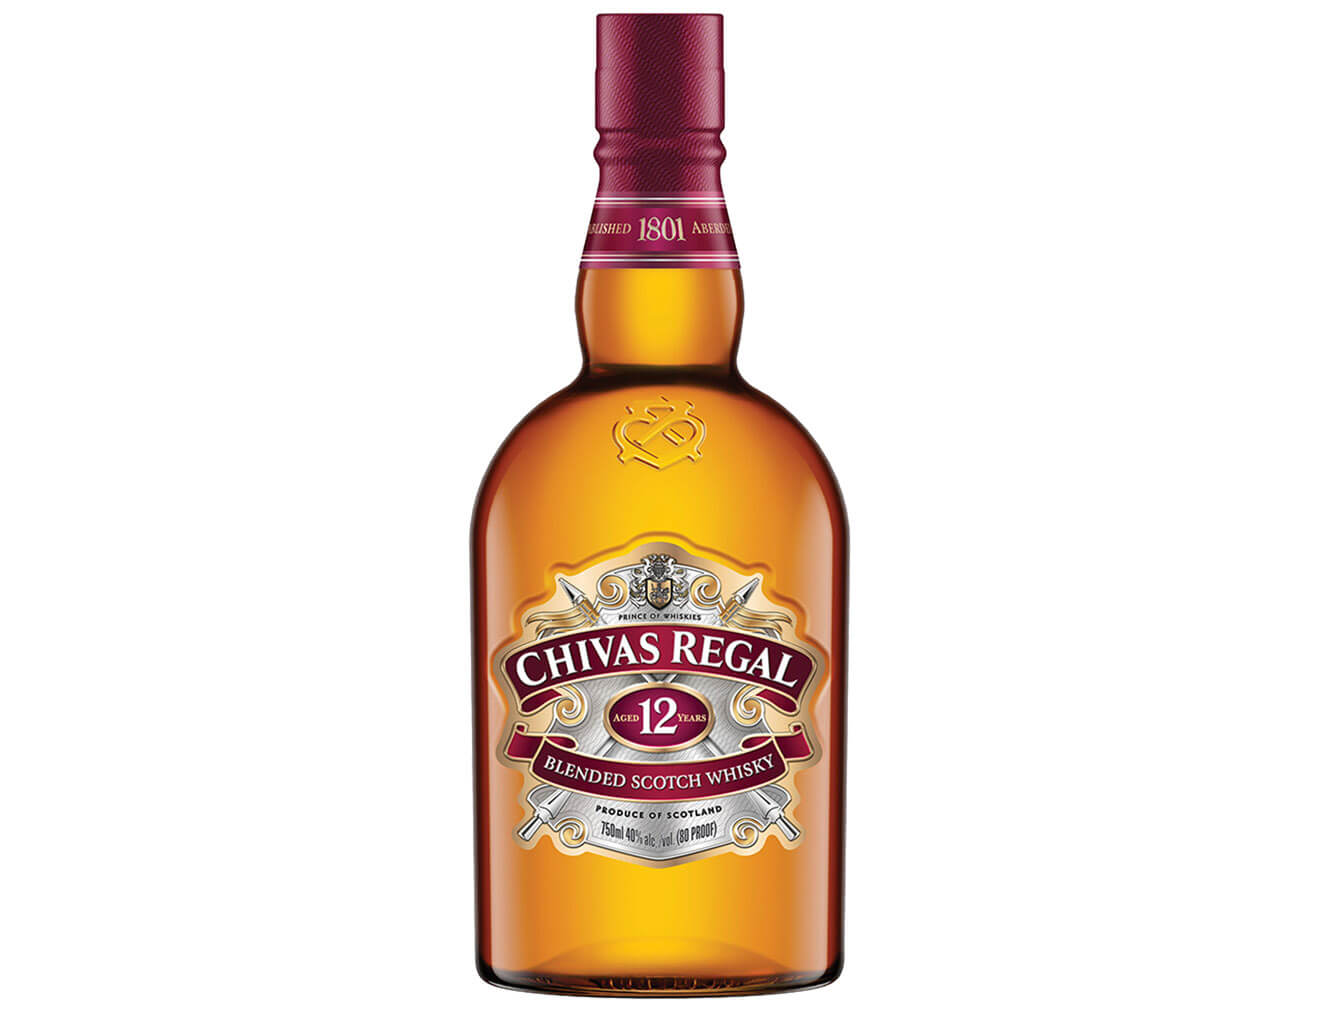 Chivas Regal 12 Year Old Reveals Iconic New Packaging